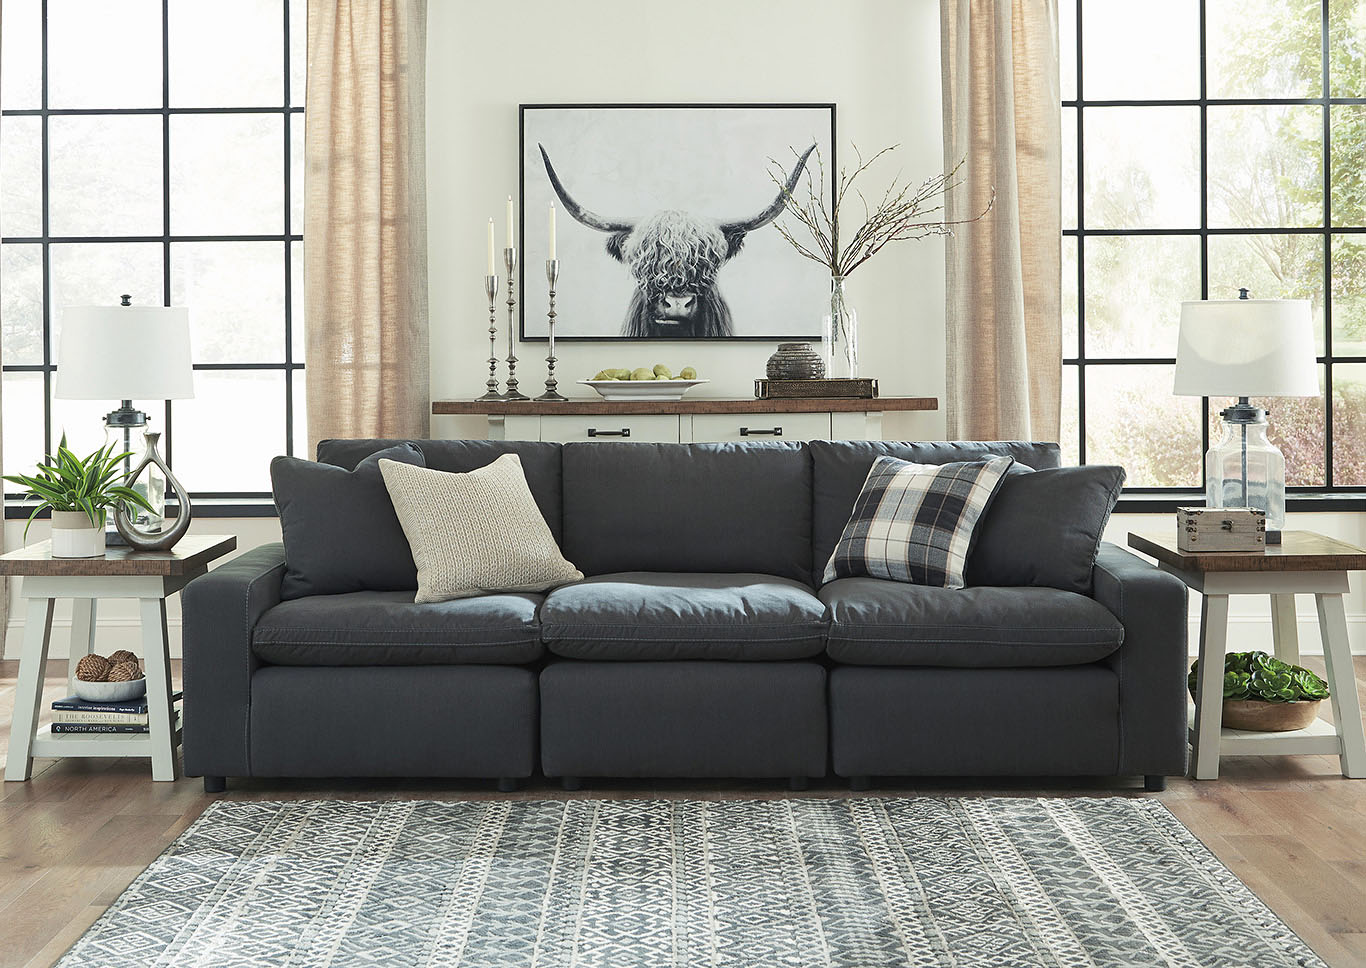 Savesto Charcoal 3 Piece Linear Sectional,Signature Design By Ashley